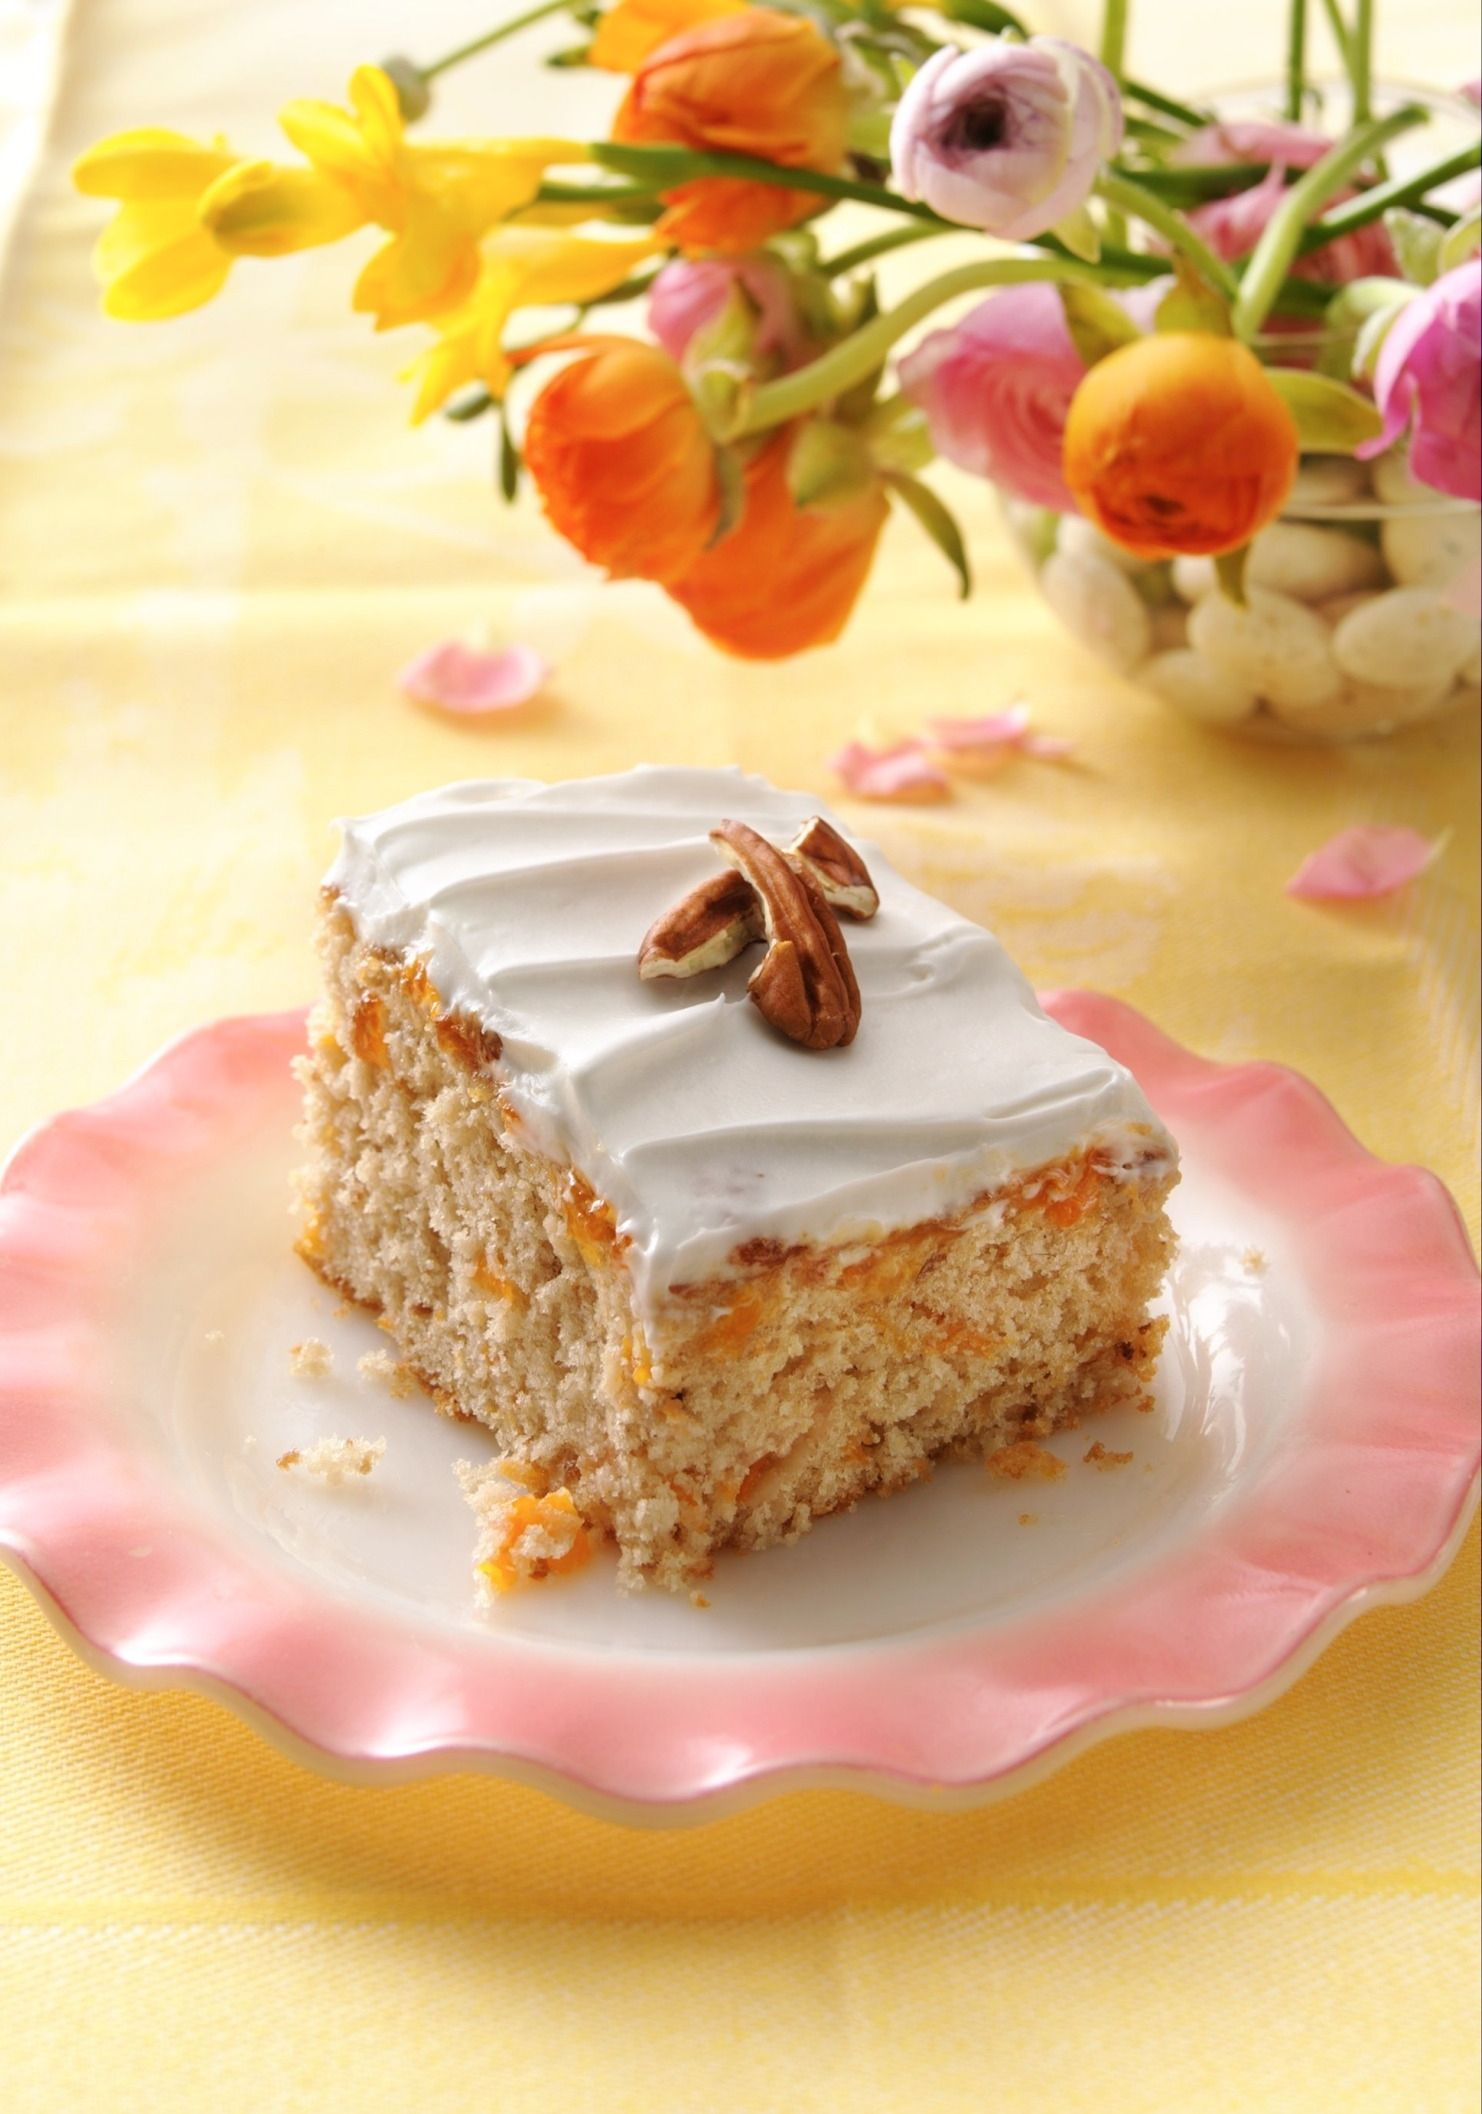 Butter pecan cake with apricots recipe apricot recipes